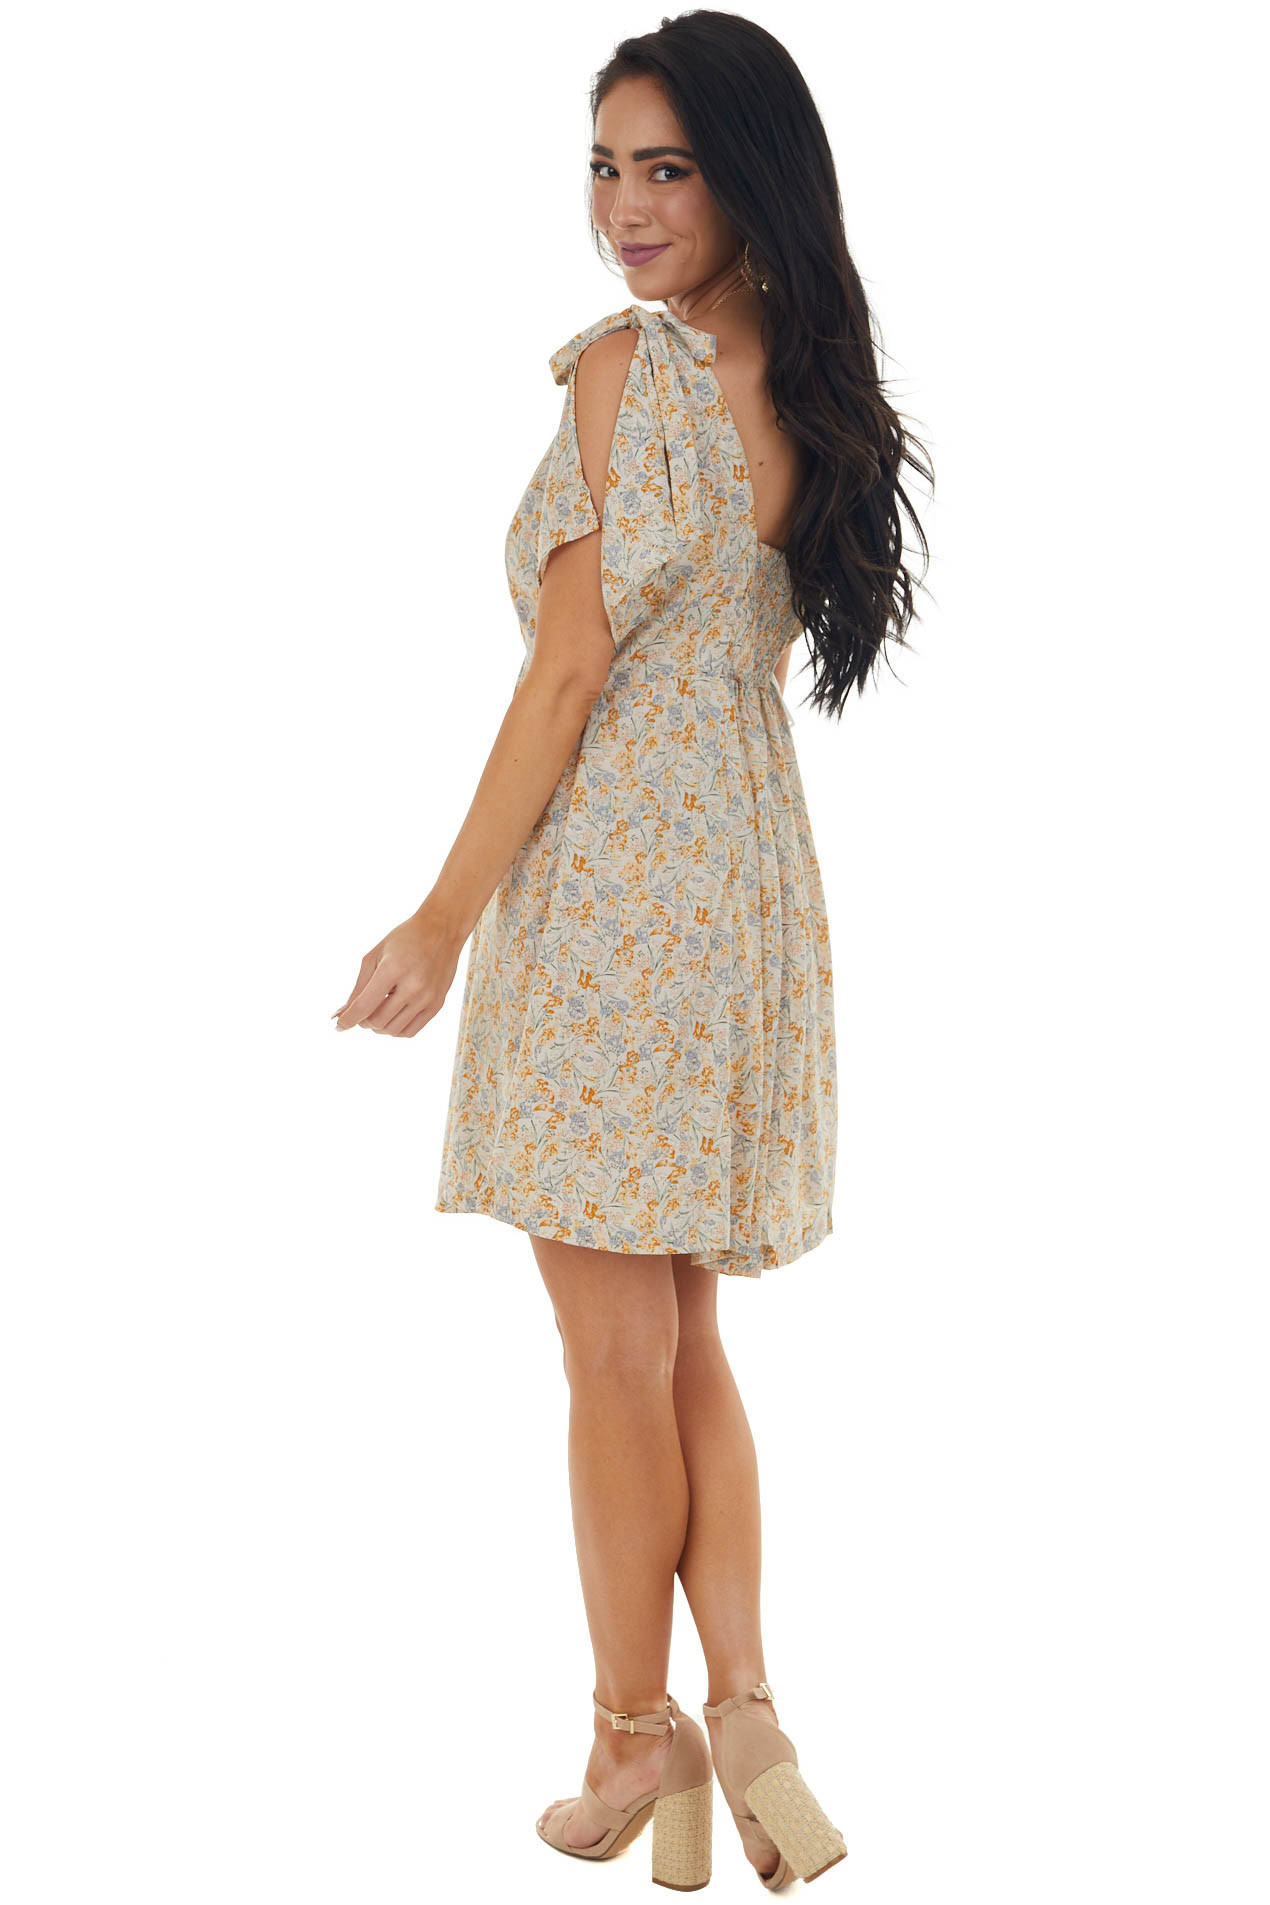 Coconut Floral Print Dress with Tie Straps